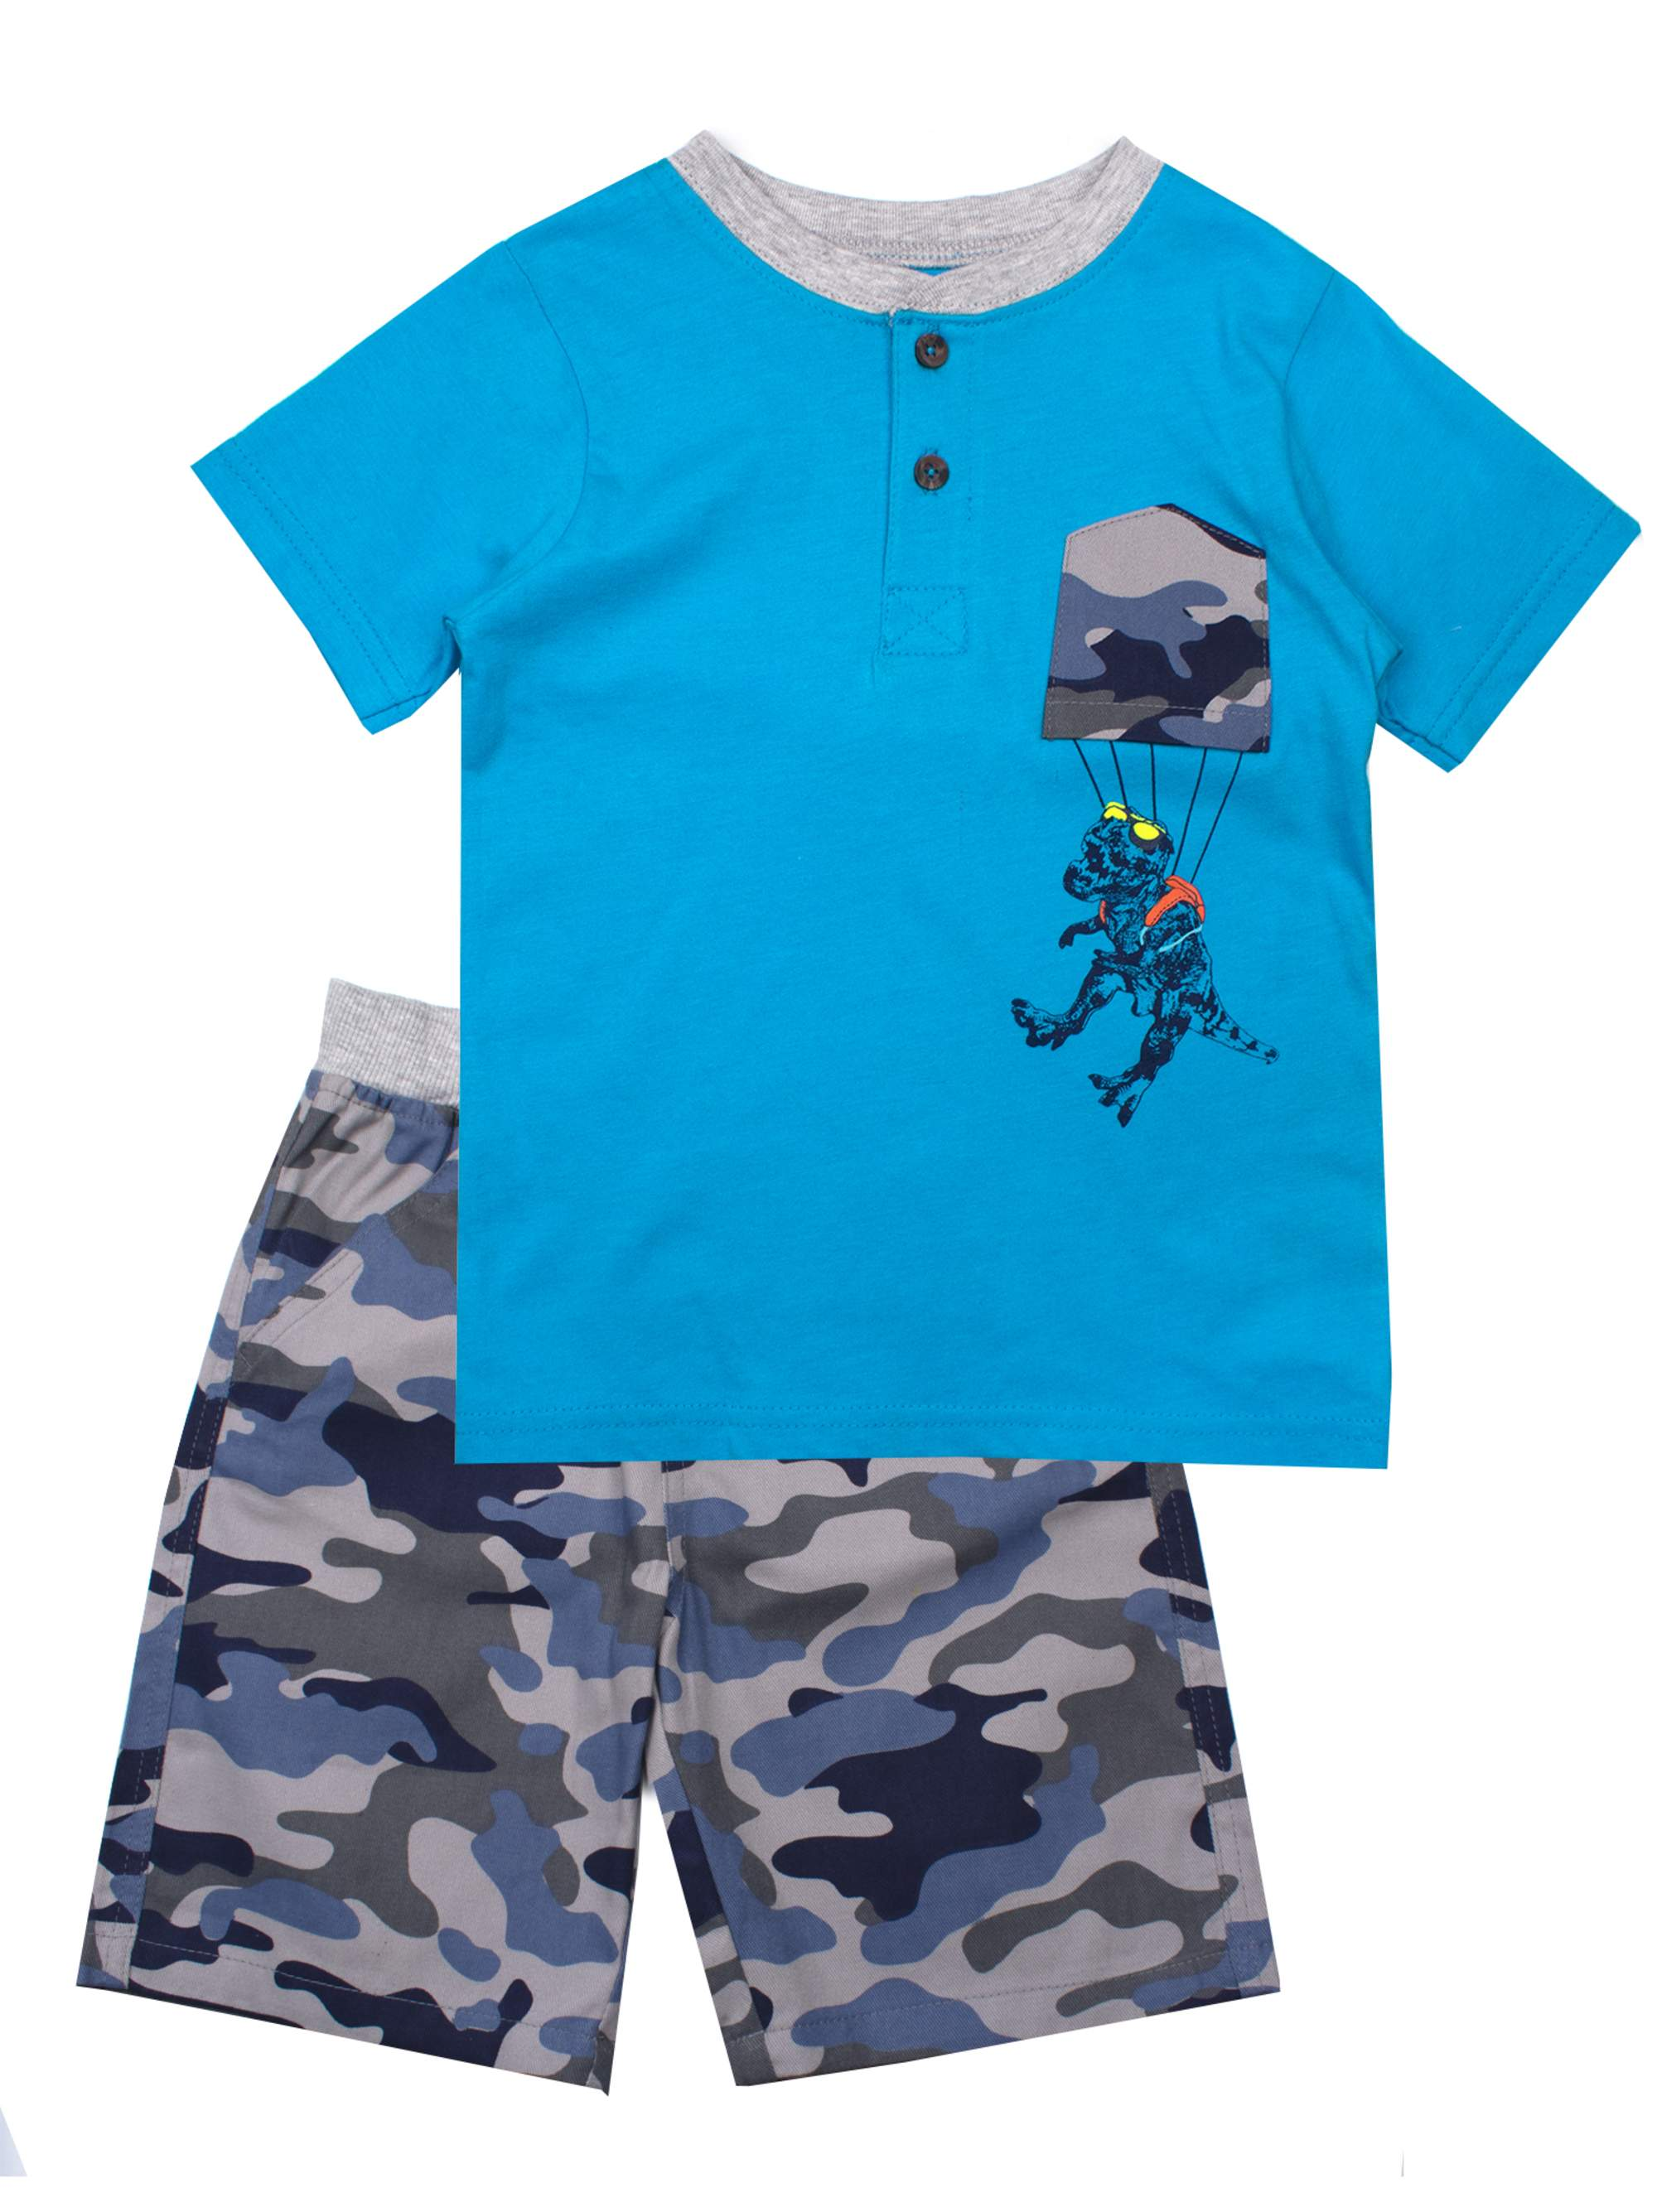 Short Sleeve Graphic Tee and Twill Pull On Shorts, 2-Piece Outfit Set (Little Boys)